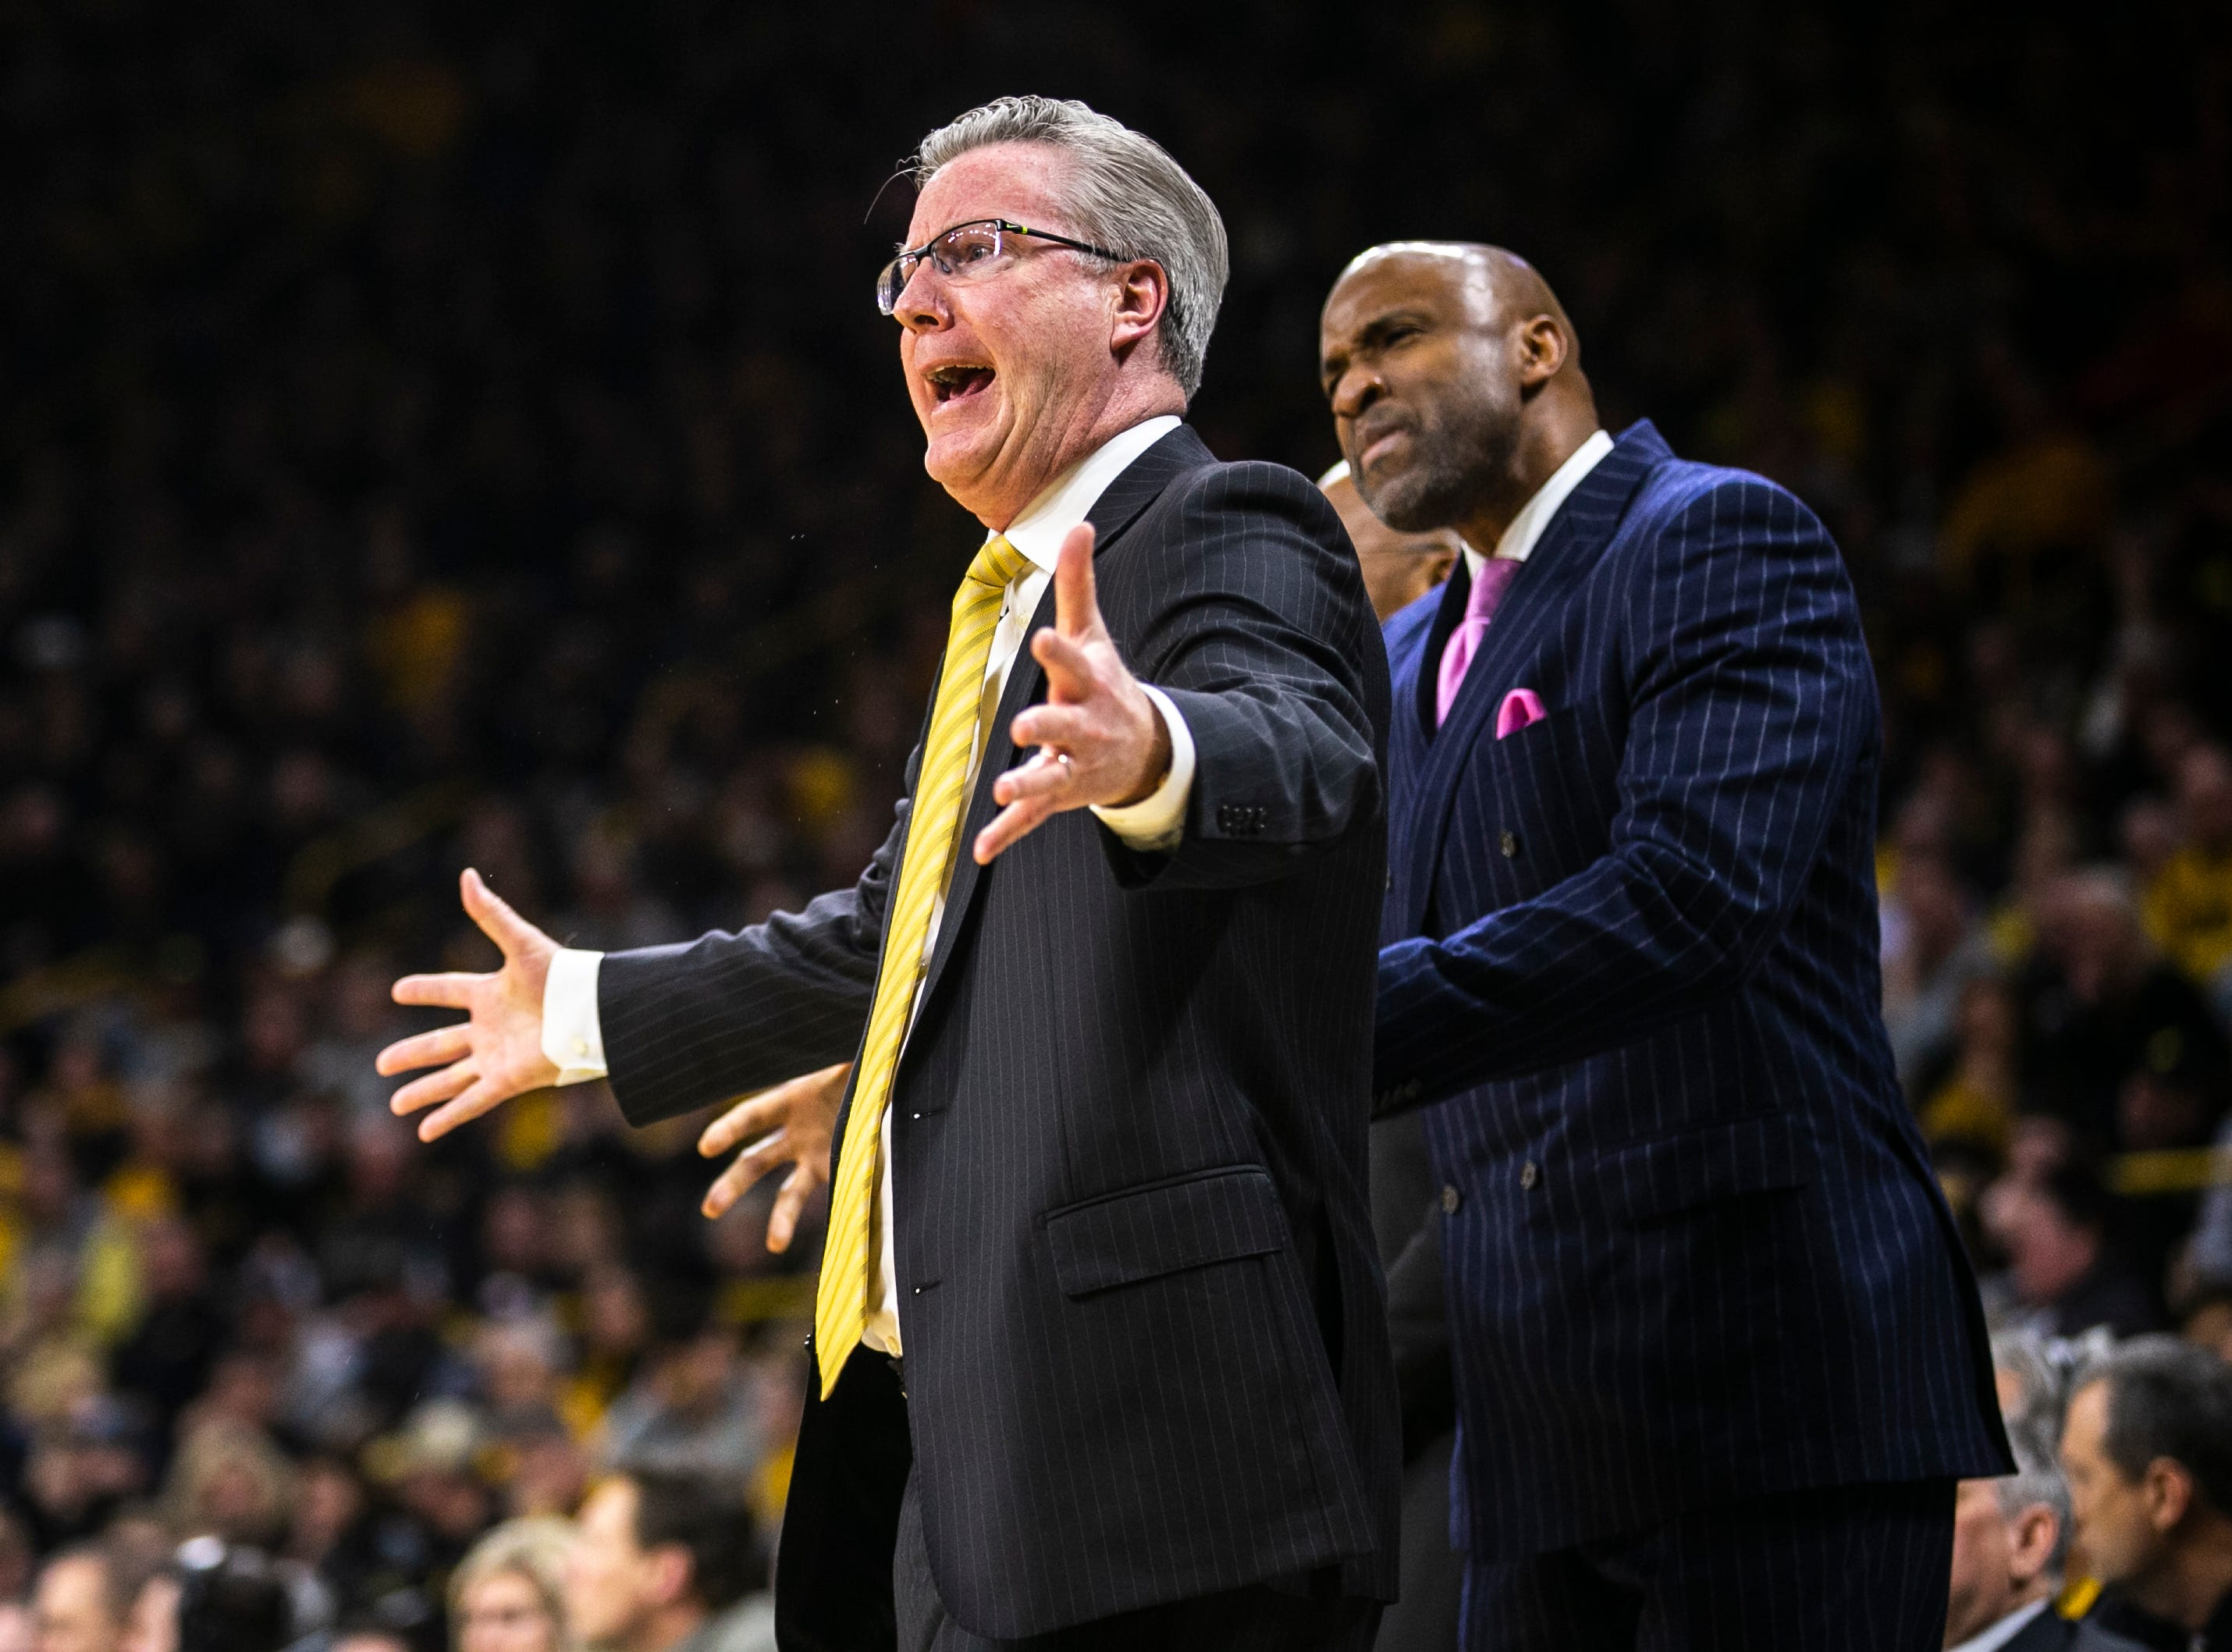 Iowa men's basketball head coach Fran McCaffery calls out while assistant Andrew Francis looks on during a NCAA Big Ten Conference men's basketball game on Friday, Feb. 1, 2019, at Carver-Hawkeye Arena in Iowa City, Iowa.